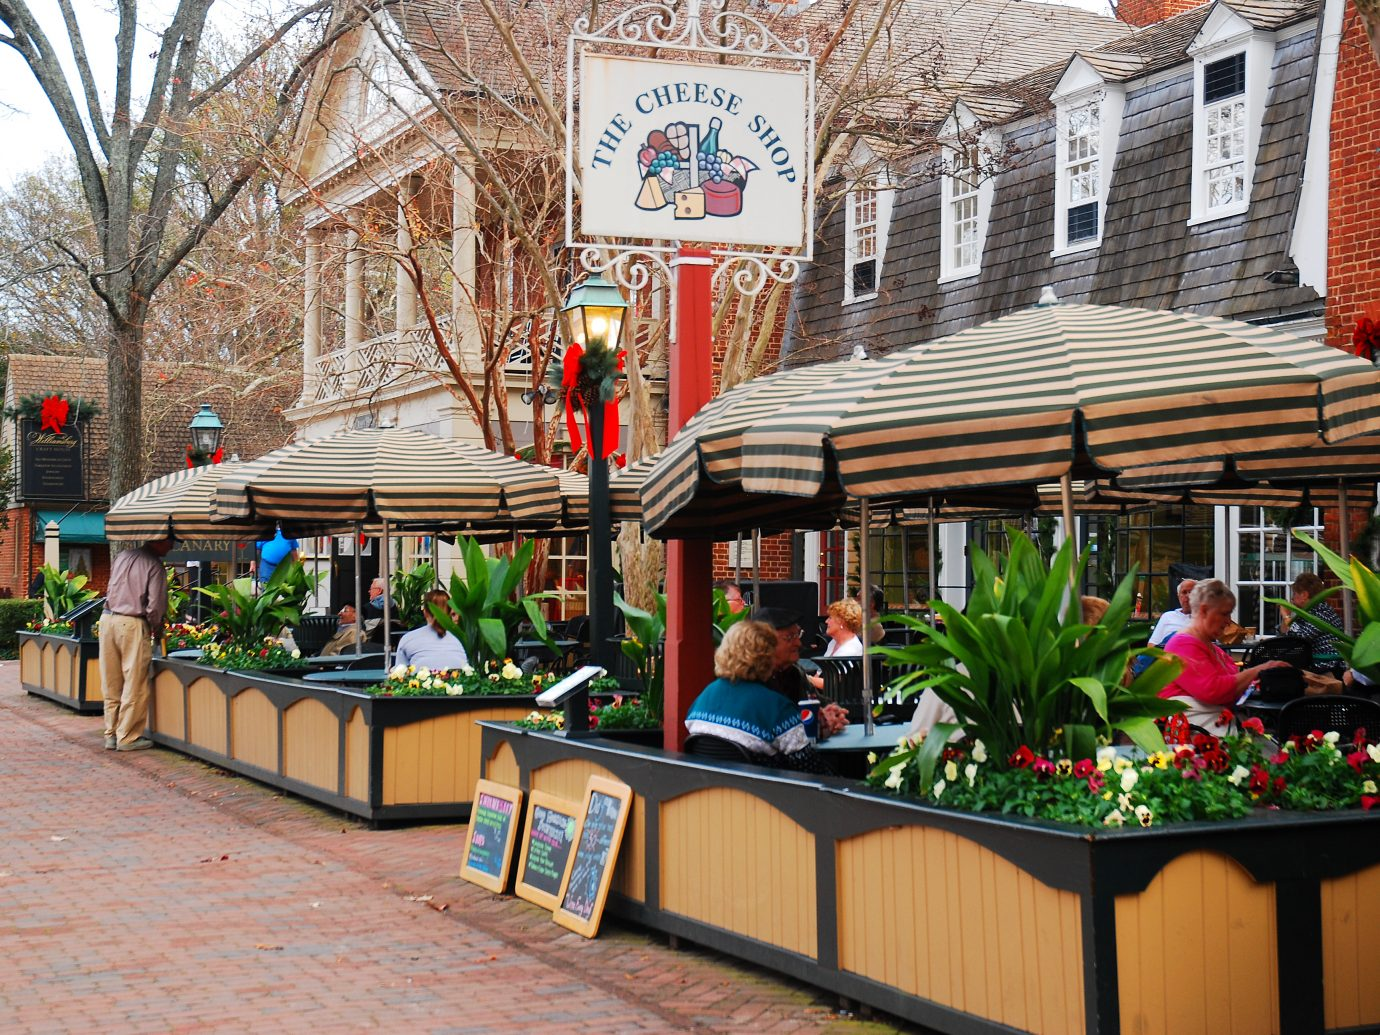 Williamsburg, VA, USA December 6, 2011 a lunch crowd gathers at Merchants Square, a retail and dining area just west of Colonial Williamsburg, Virginia